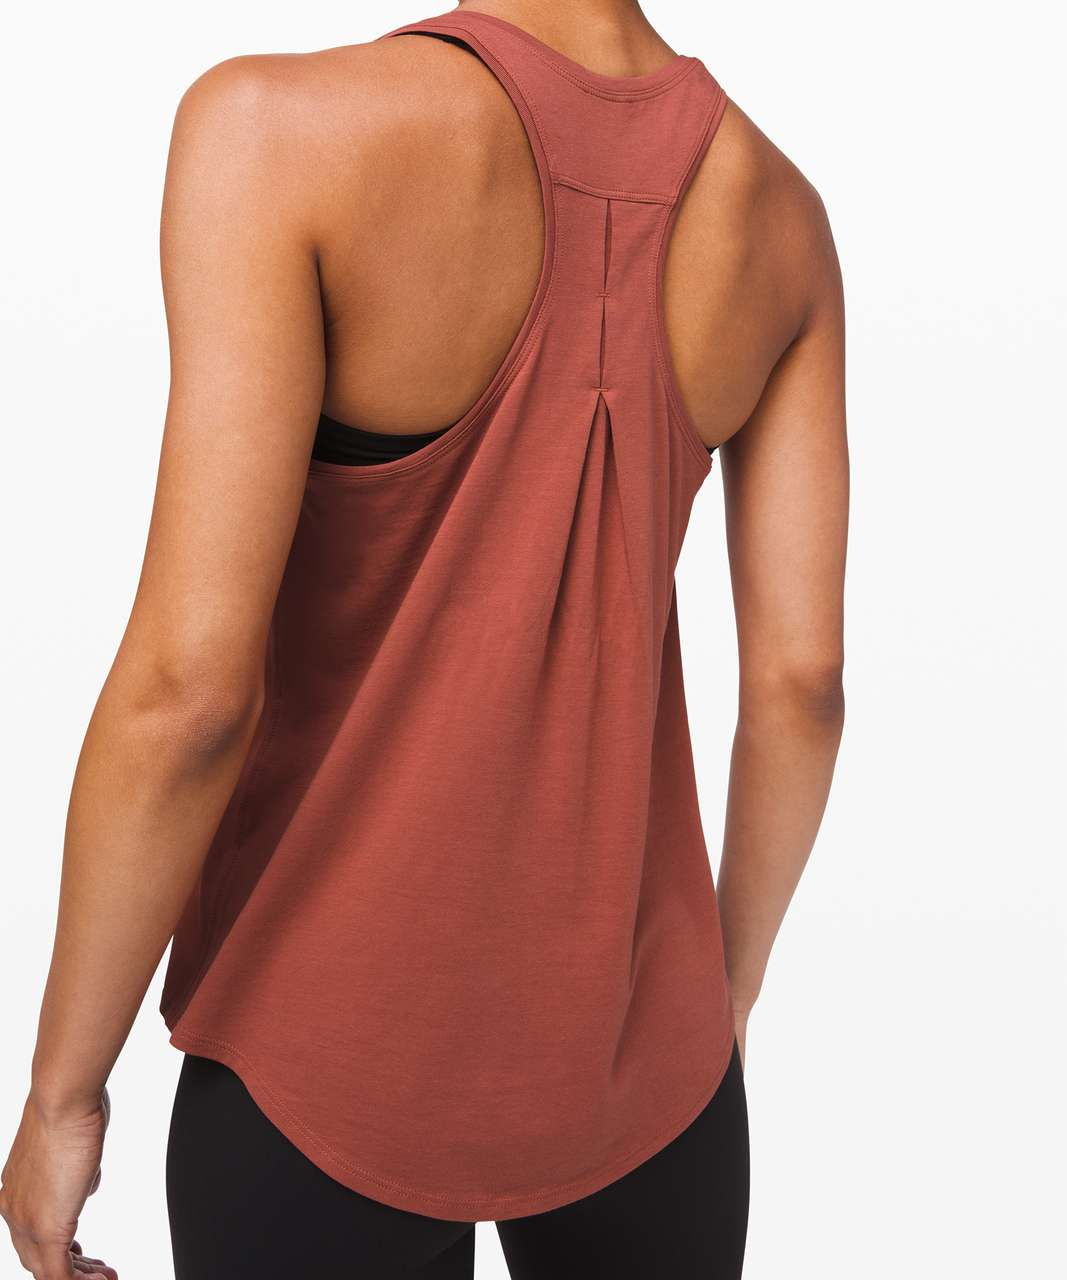 Lululemon Love Tank *Pleated - Rustic Clay